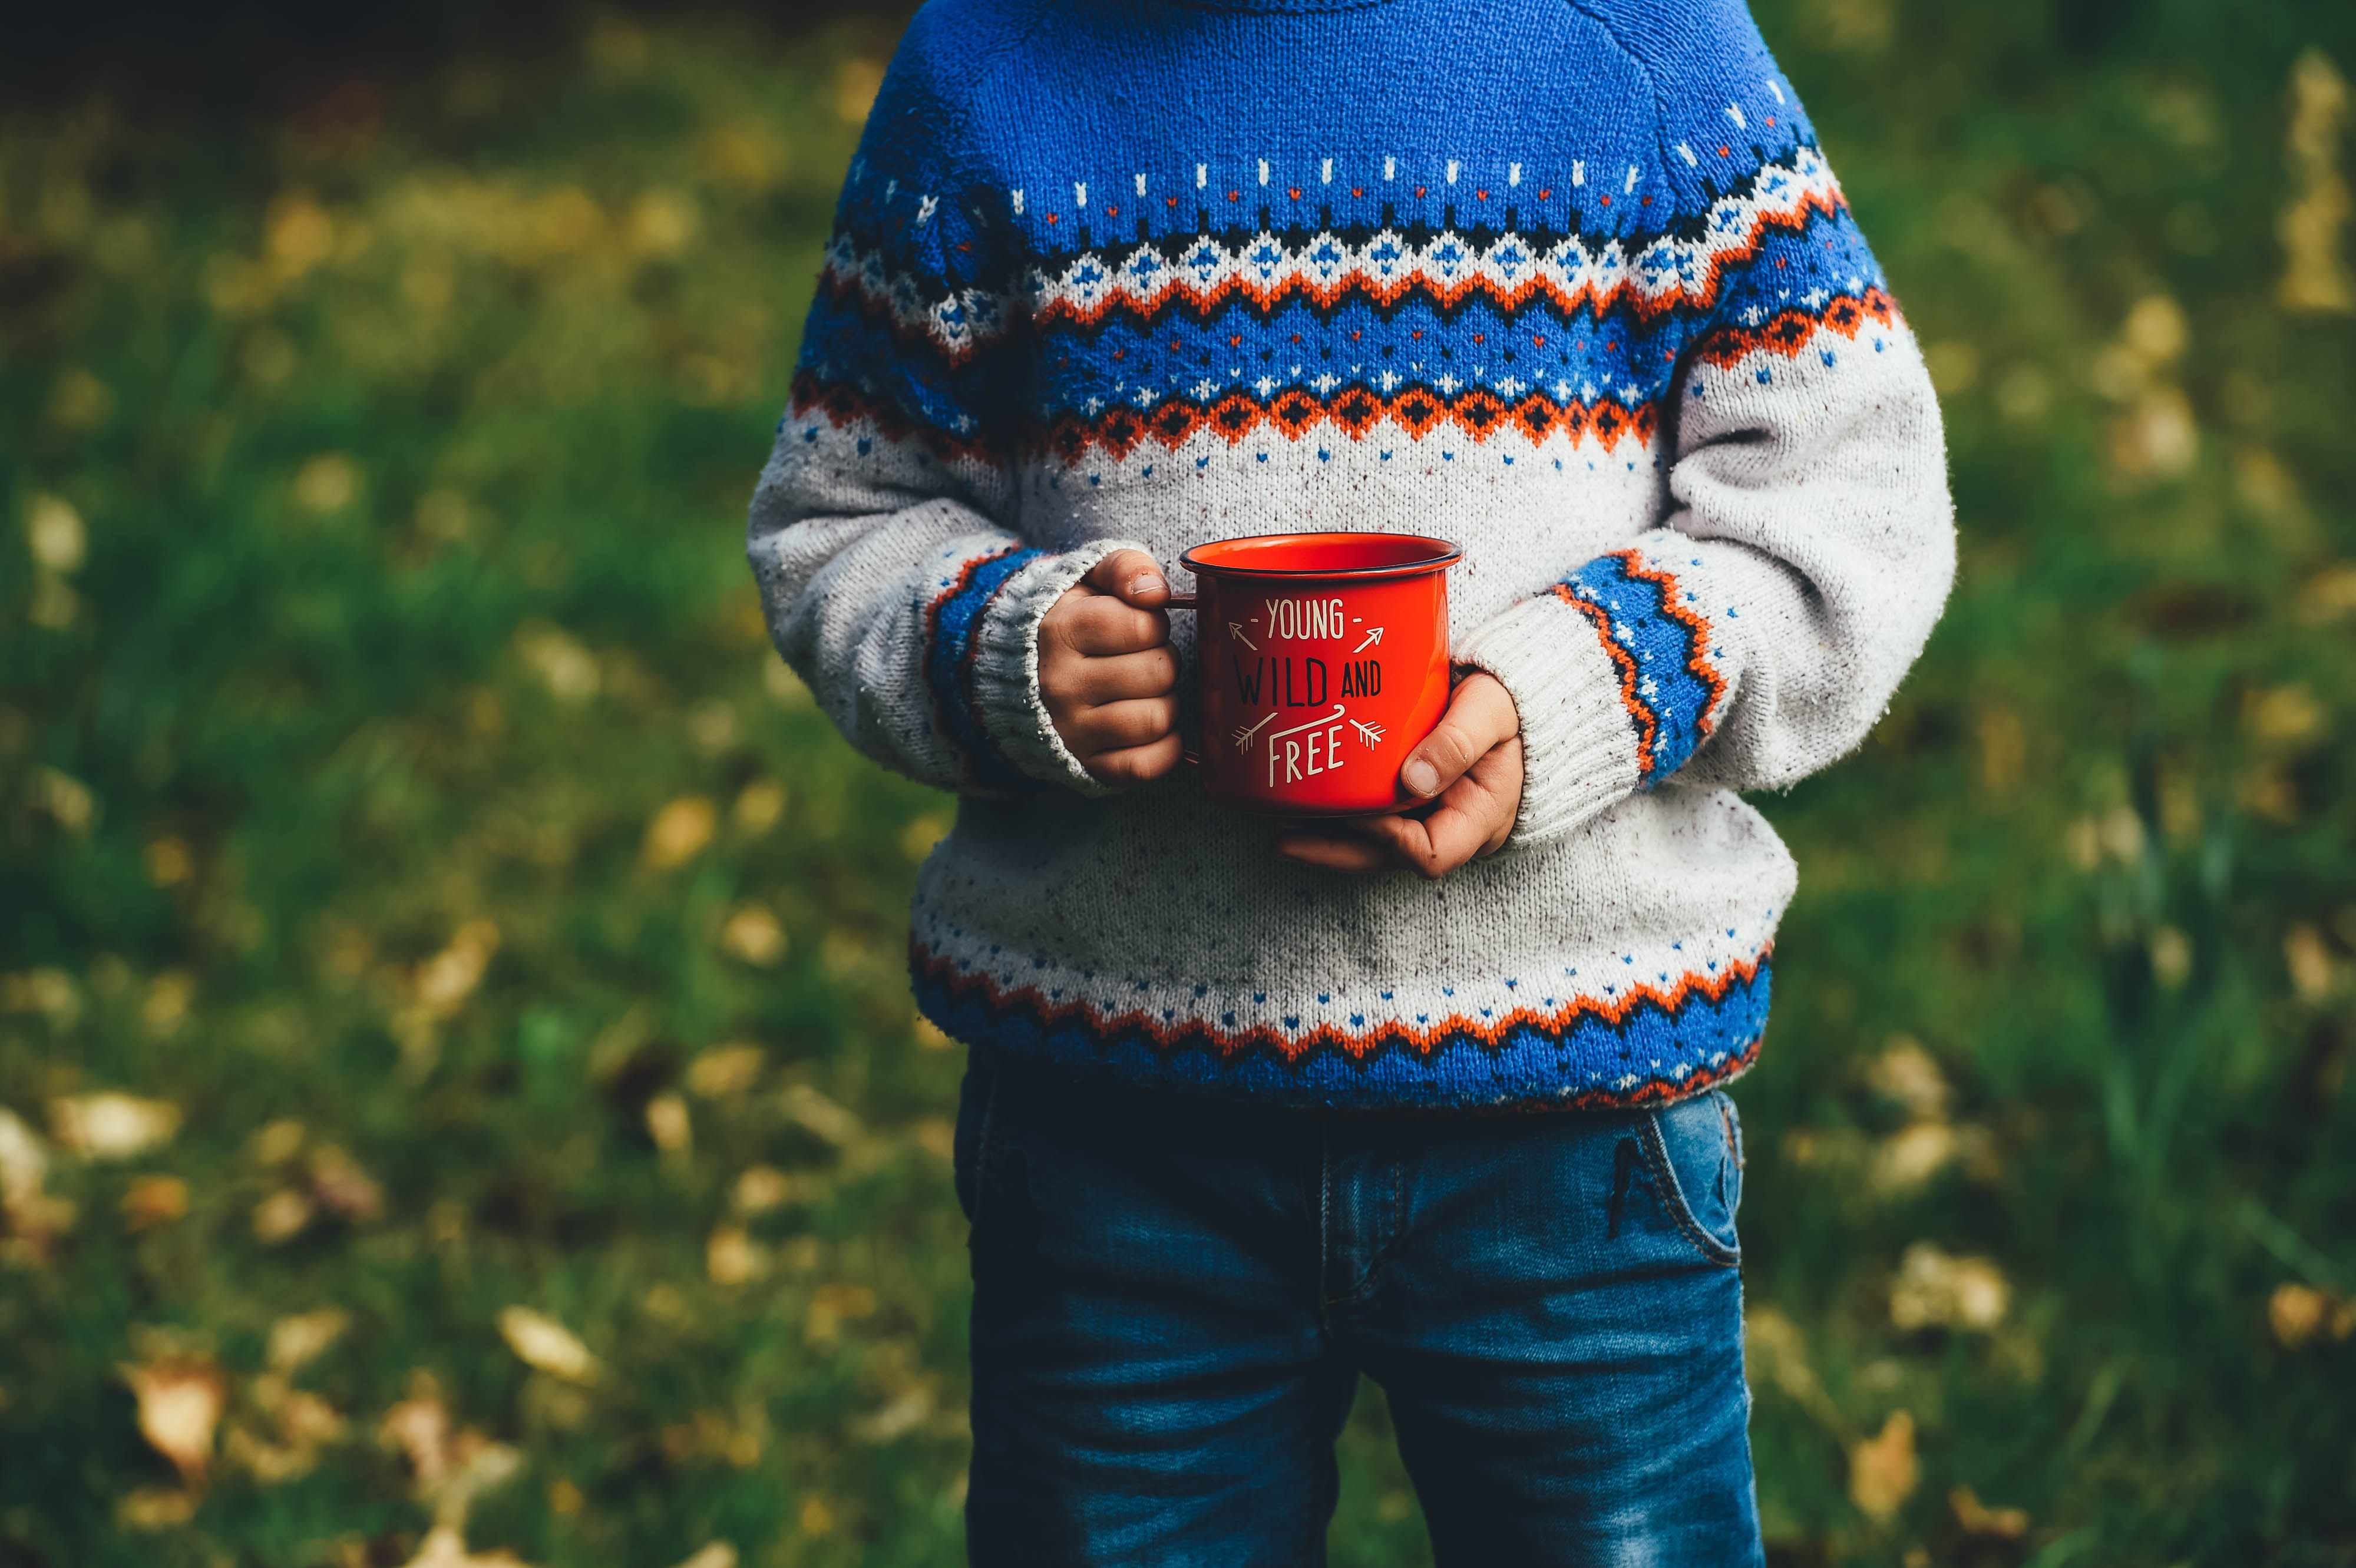 """A child holding a red enamel cup with """"young, wild and free"""" written on it"""